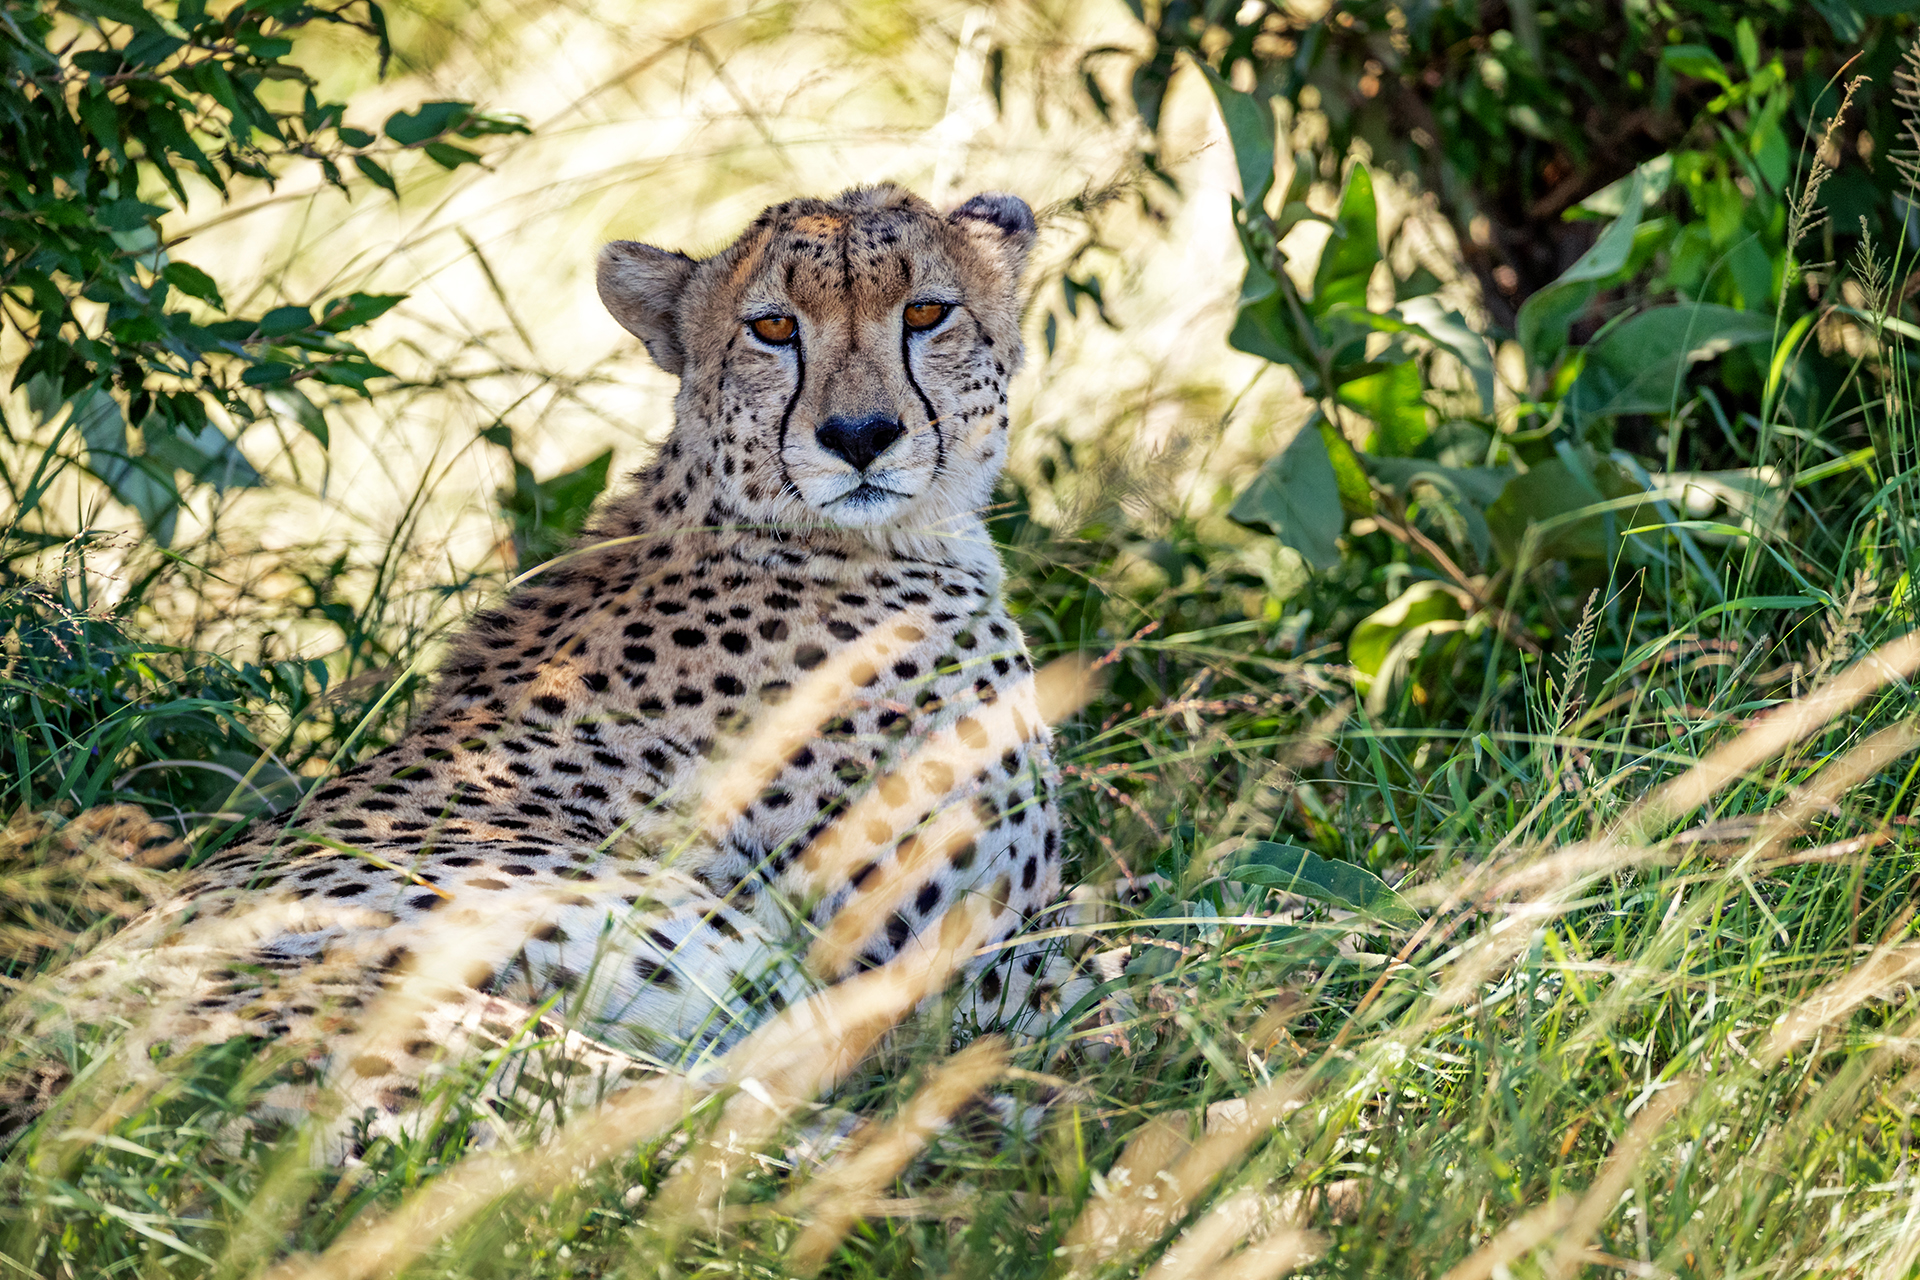 Cheetah in Grass in Kenya Africa.jpg